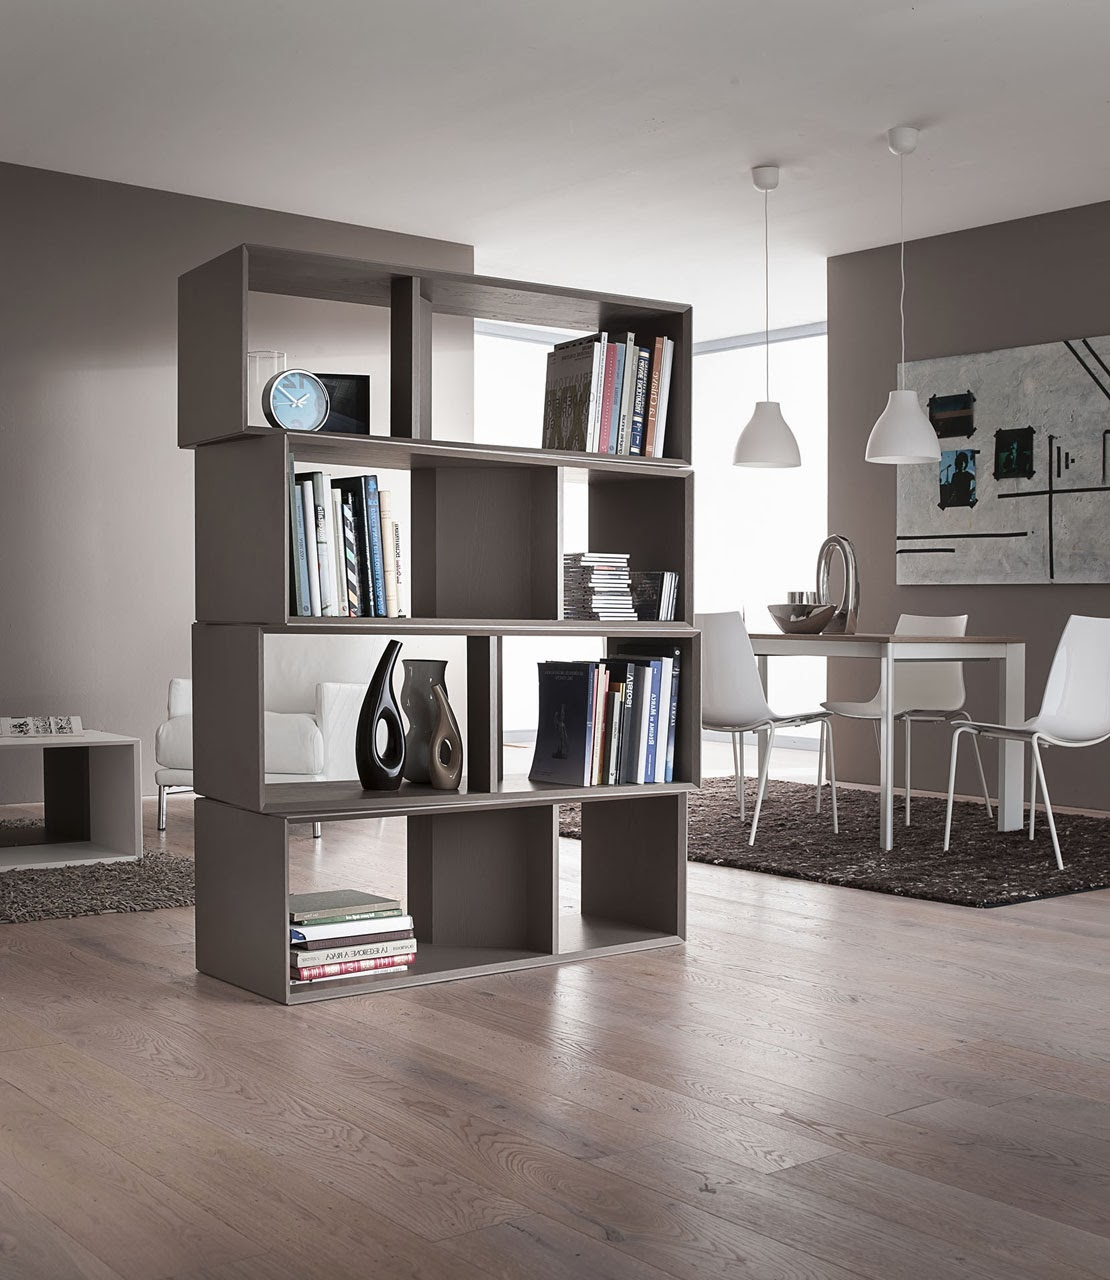 Libreria design tre proposte d 39 arredo blog outlet for Arredamento libreria design